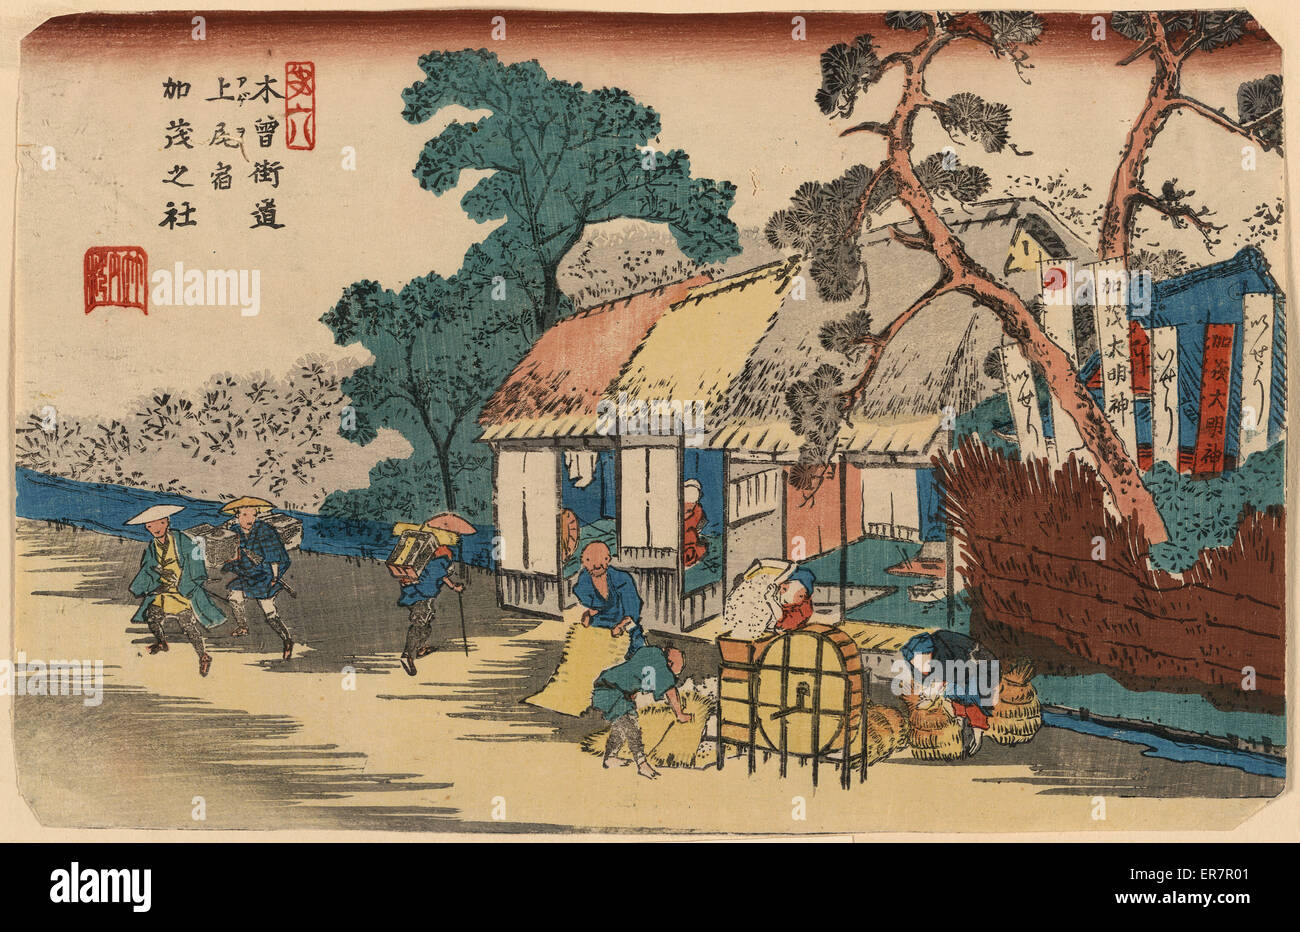 Kamo Shrine, Ageo. Print shows farmers at a mill getting their grain ground on a millstone in front of the miller's - Stock Image